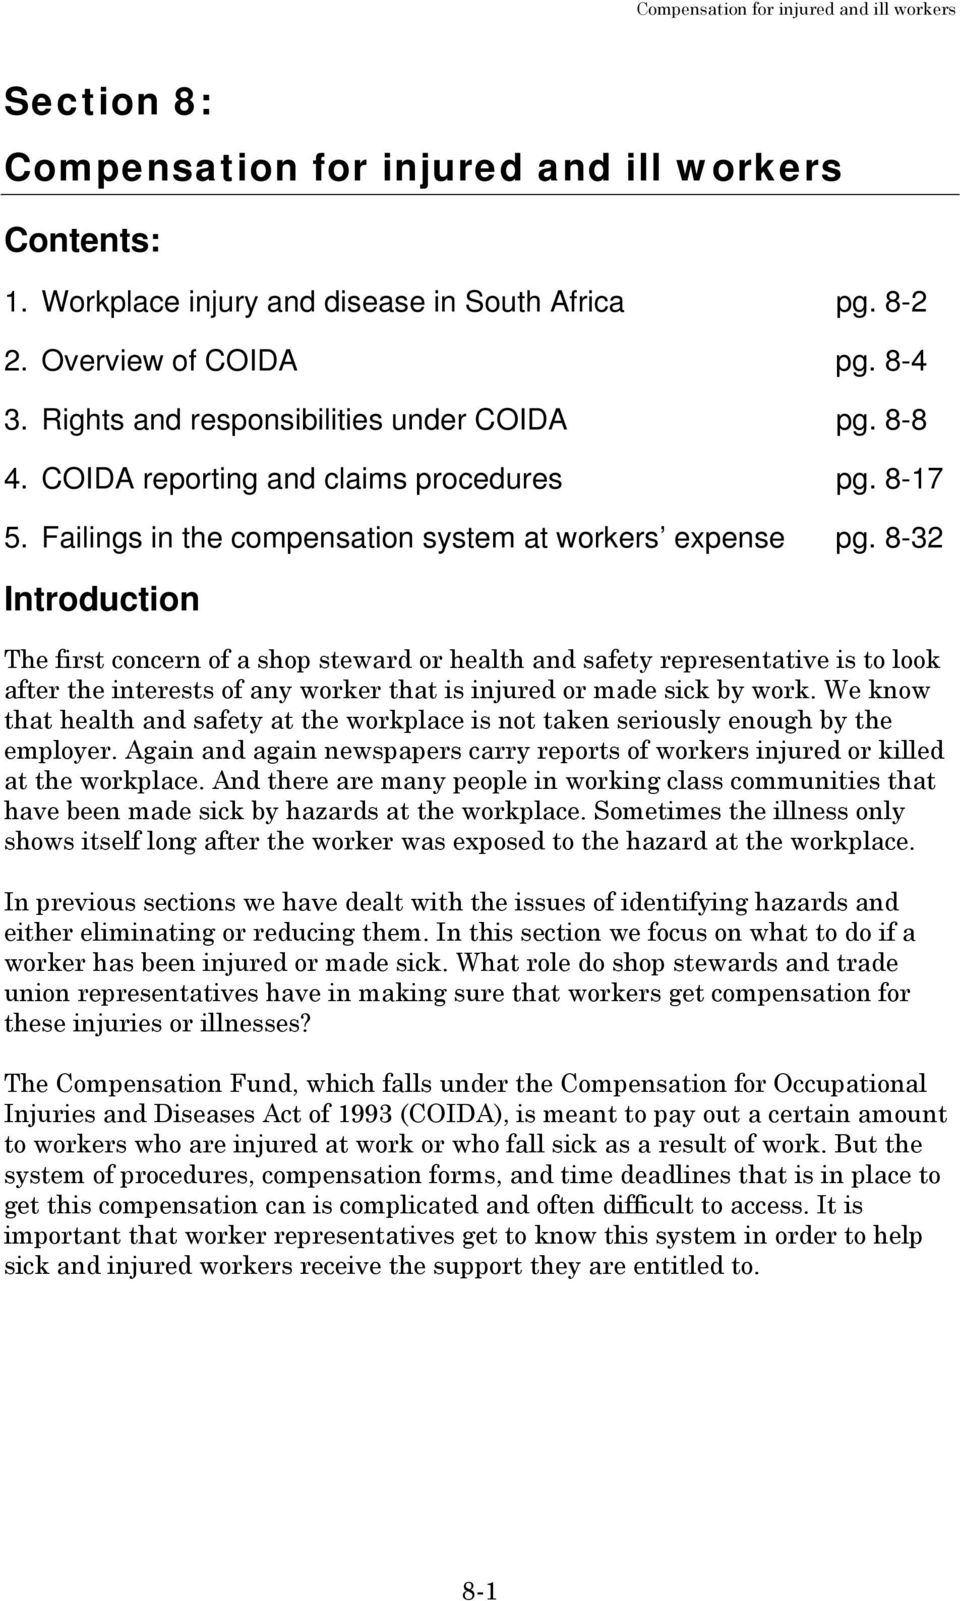 8-32 Introduction The first concern of a shop steward or health and safety representative is to look after the interests of any worker that is injured or made sick by work.